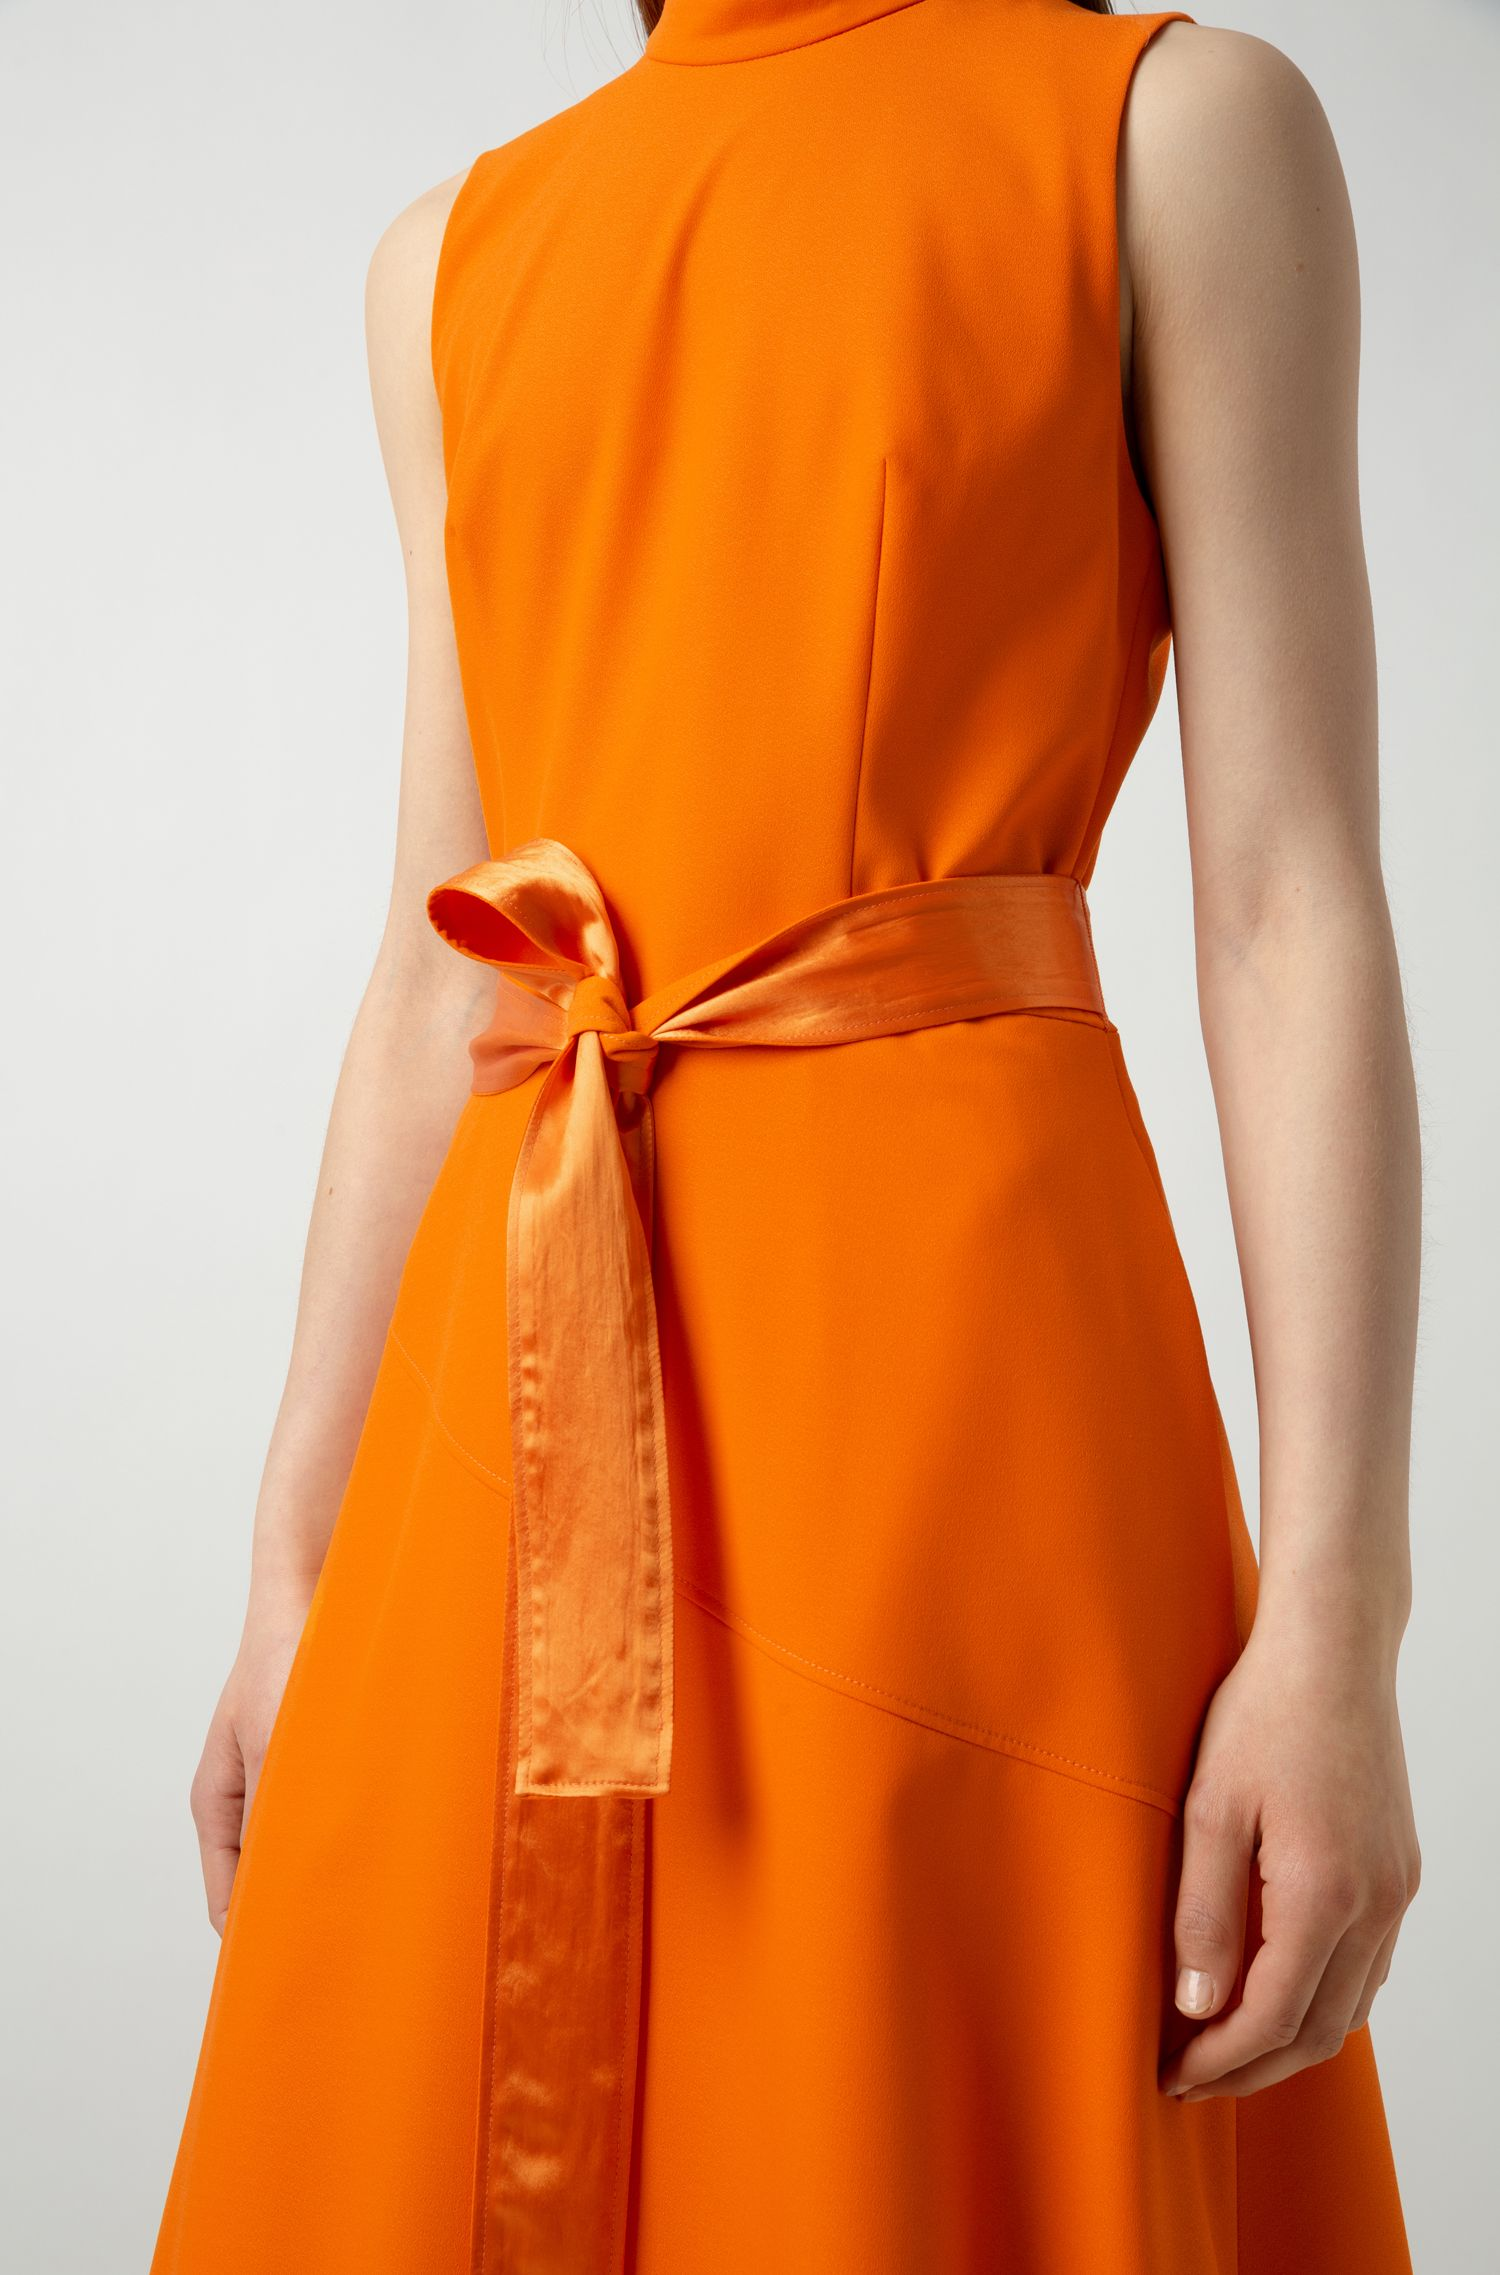 Ärmelloses Midikleid aus Krepp mit doppellagigem Rock, Orange